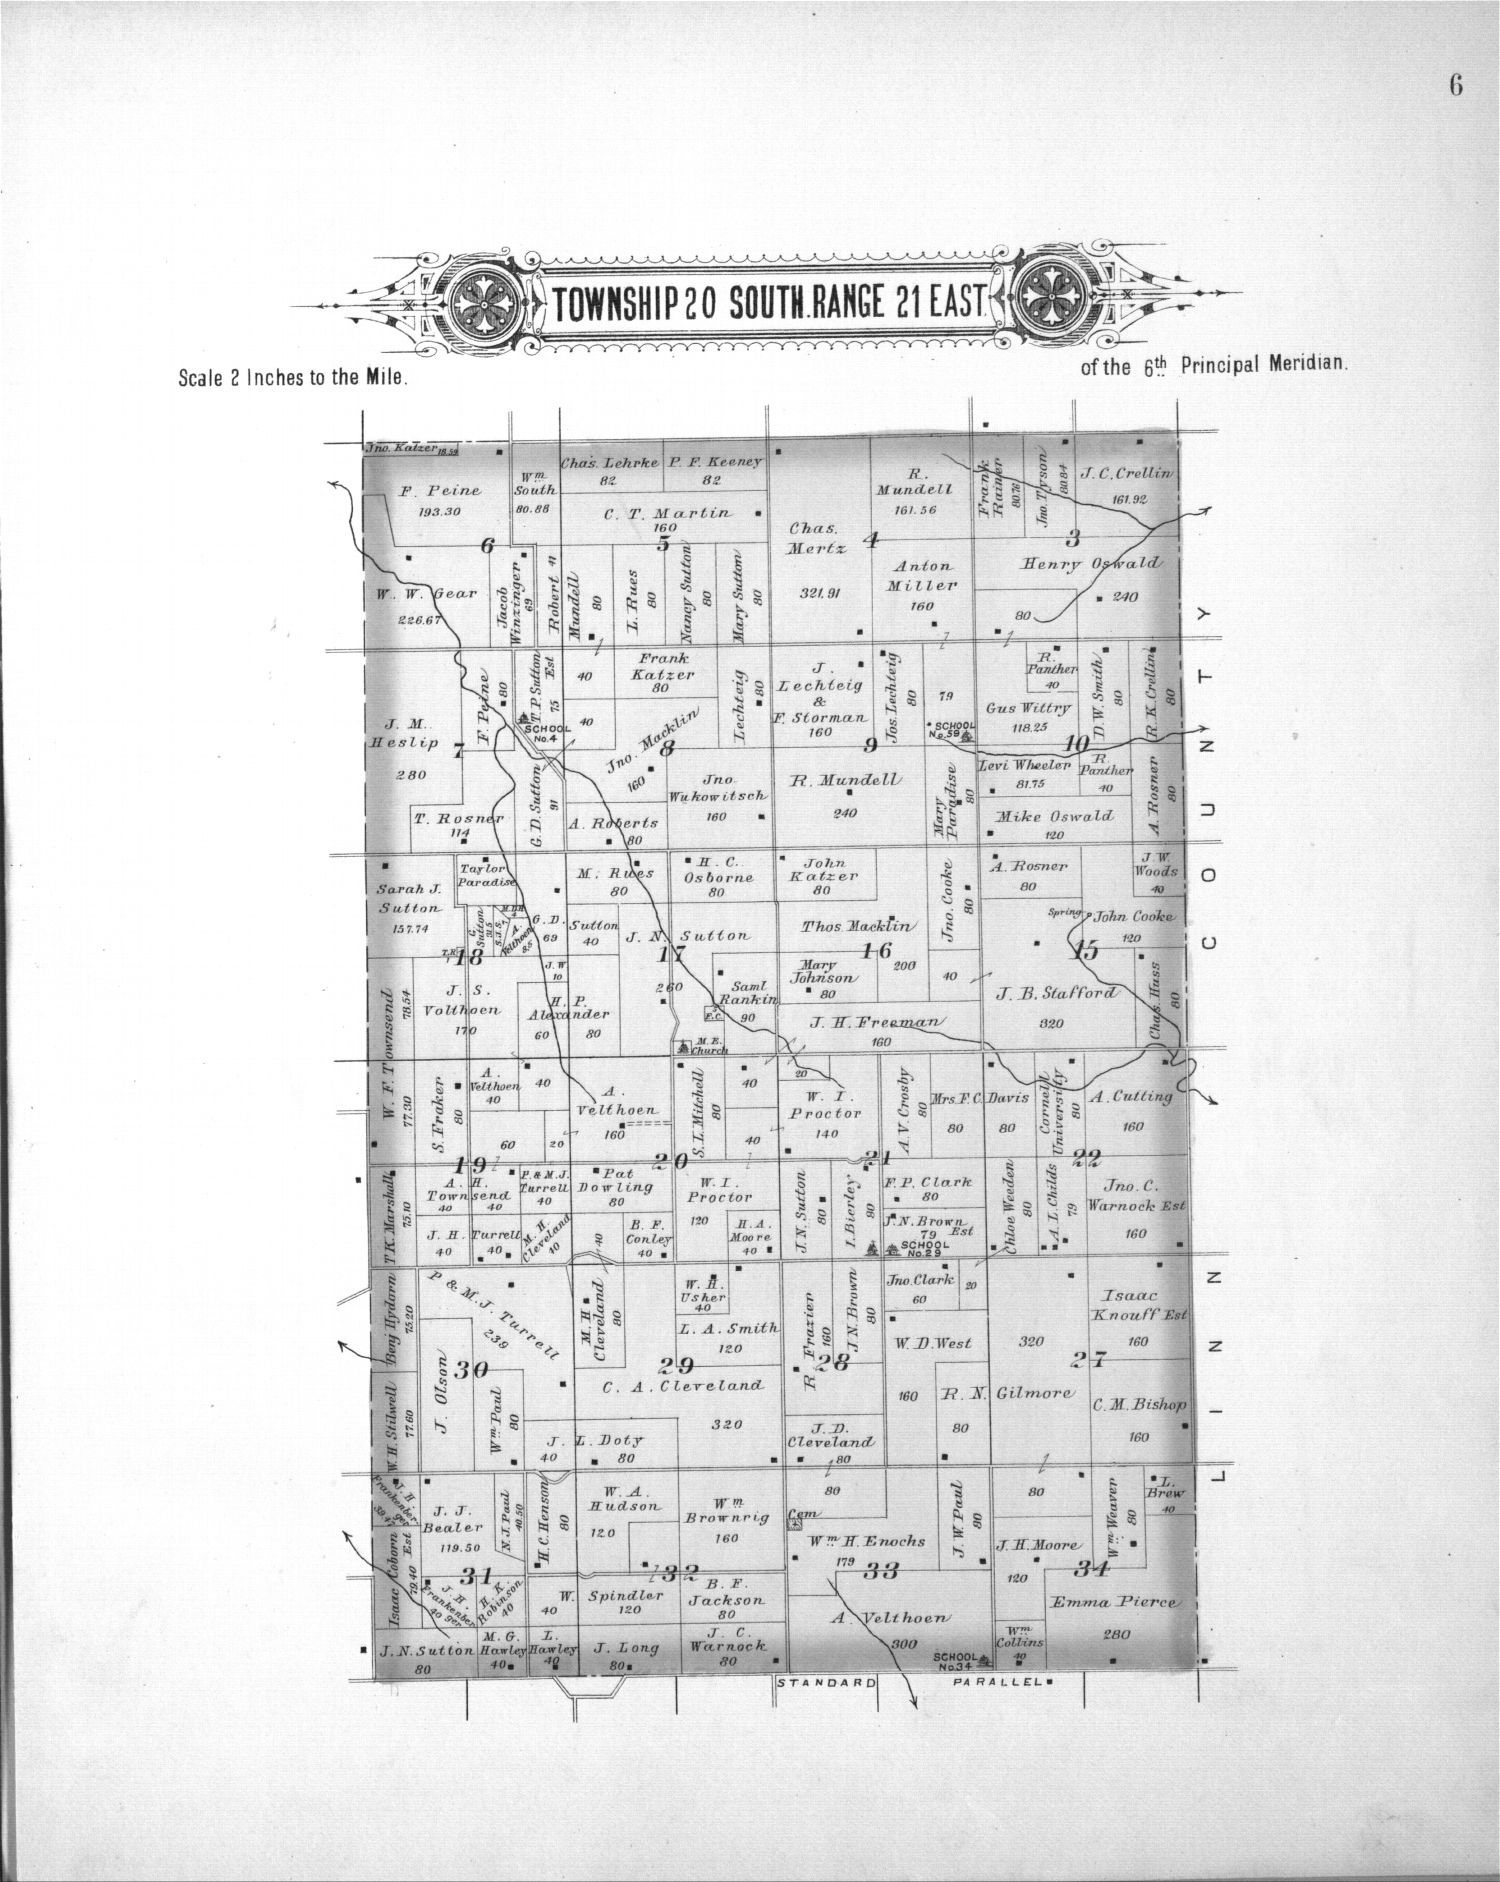 Plat book, Anderson County, Kansas - 4